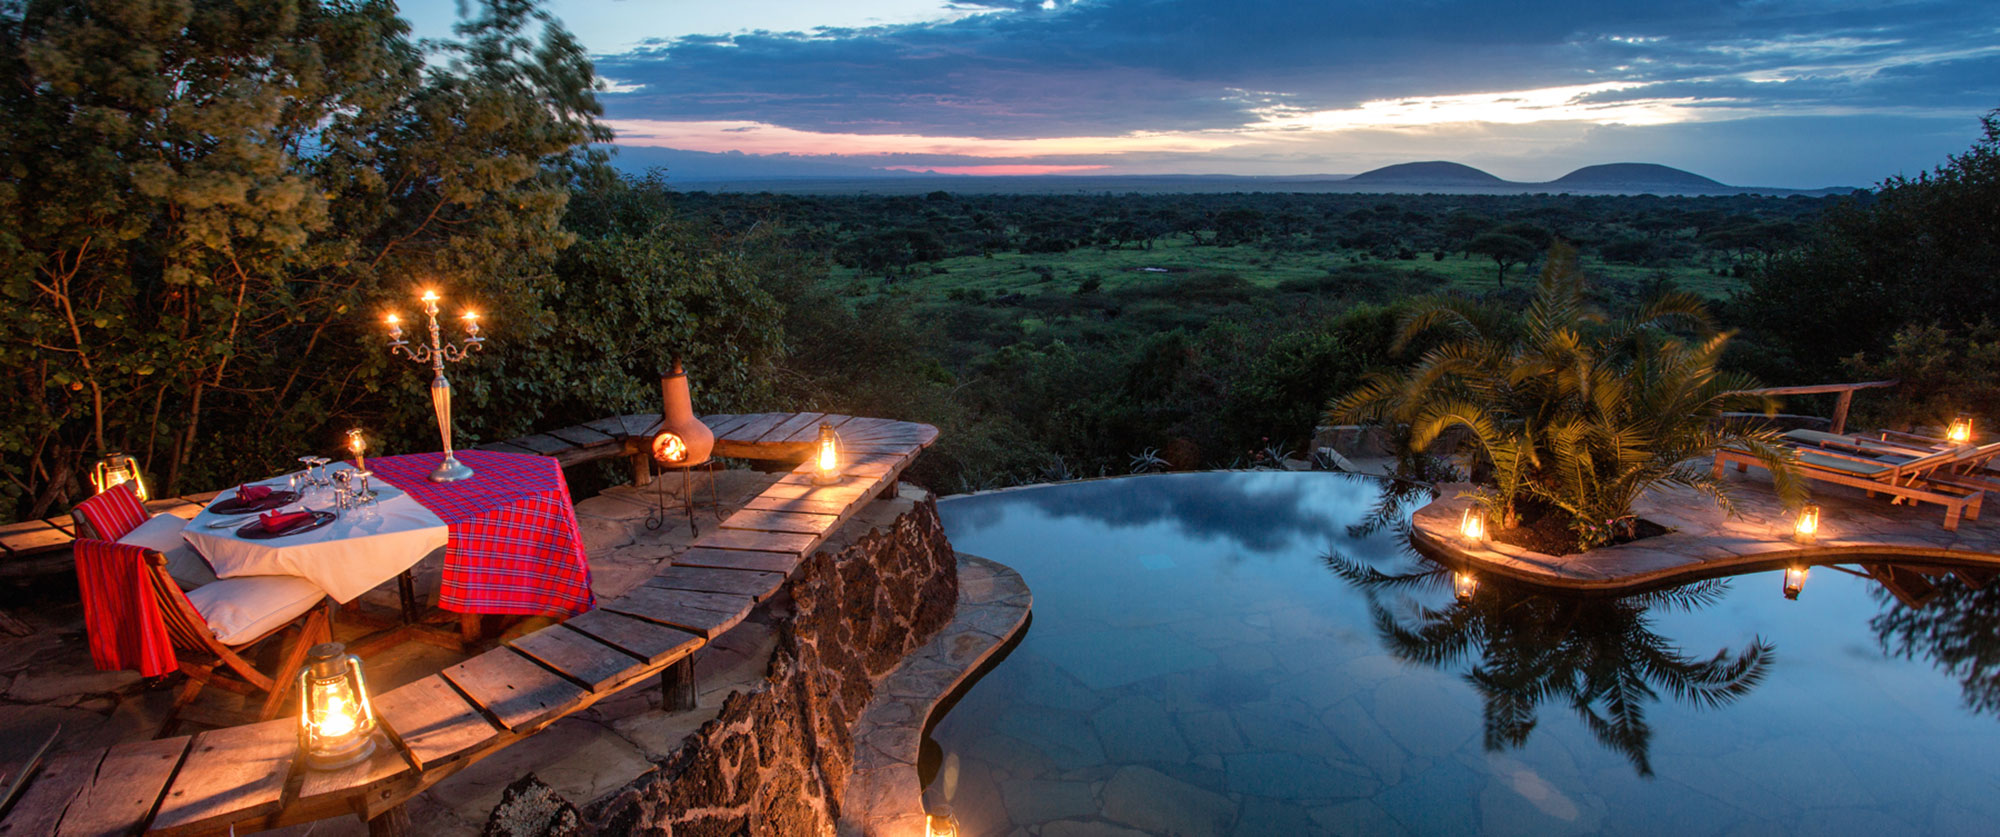 Luxury Kenya Vacation Packages - Best Safari Lodges Kenya, Ol Donyo Lodge Pool